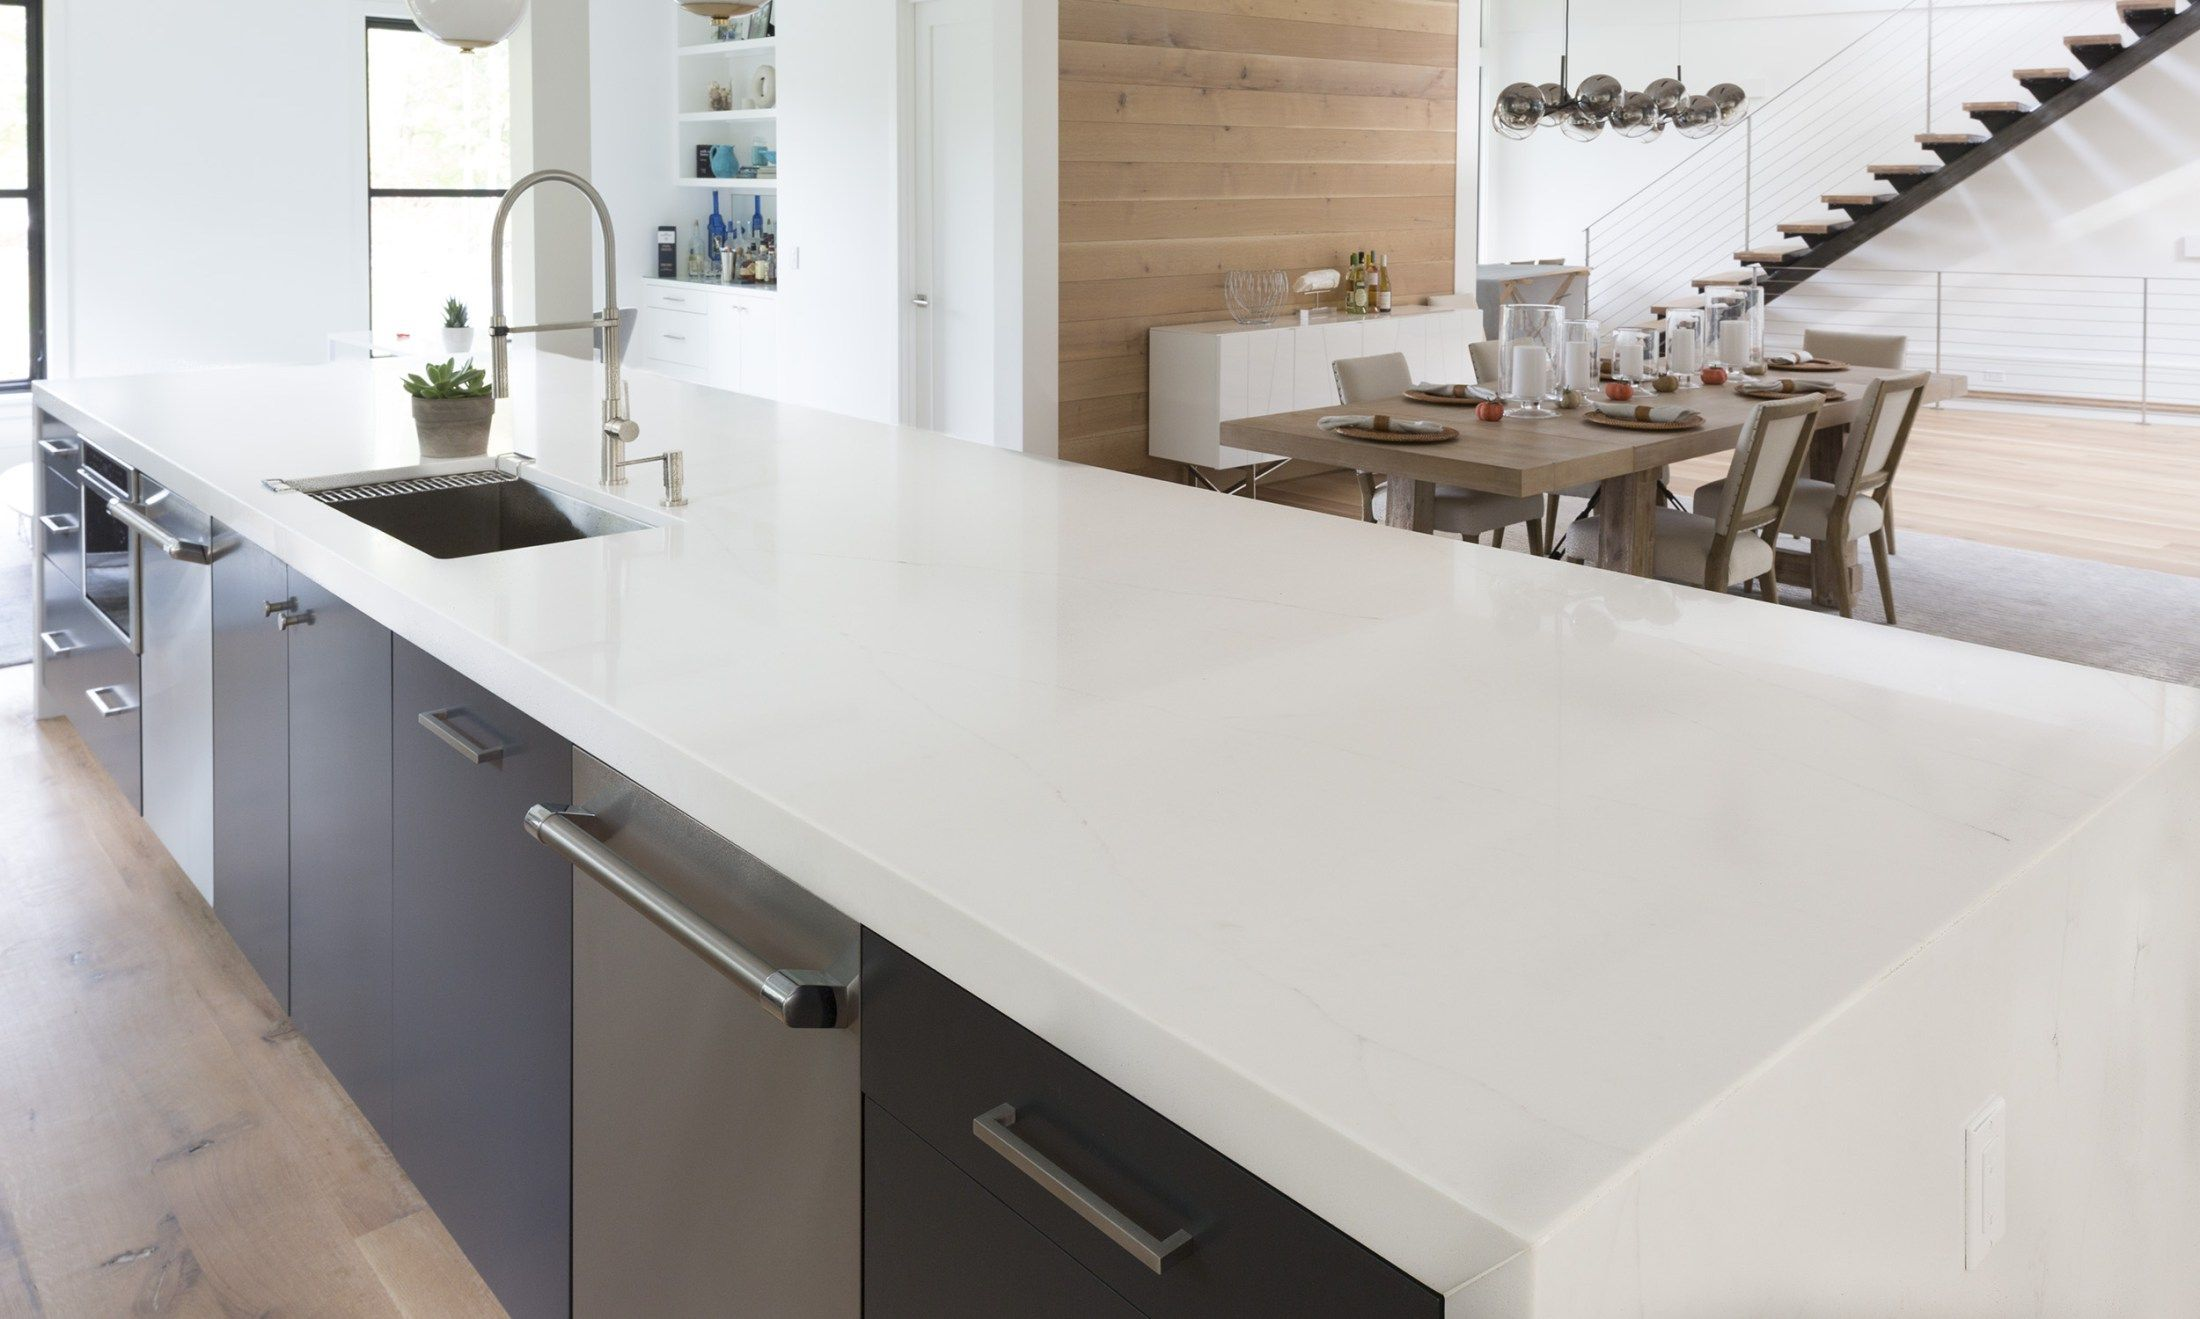 Lincoln Aurea Stone White Quartz Blue Kitchen Inspiration